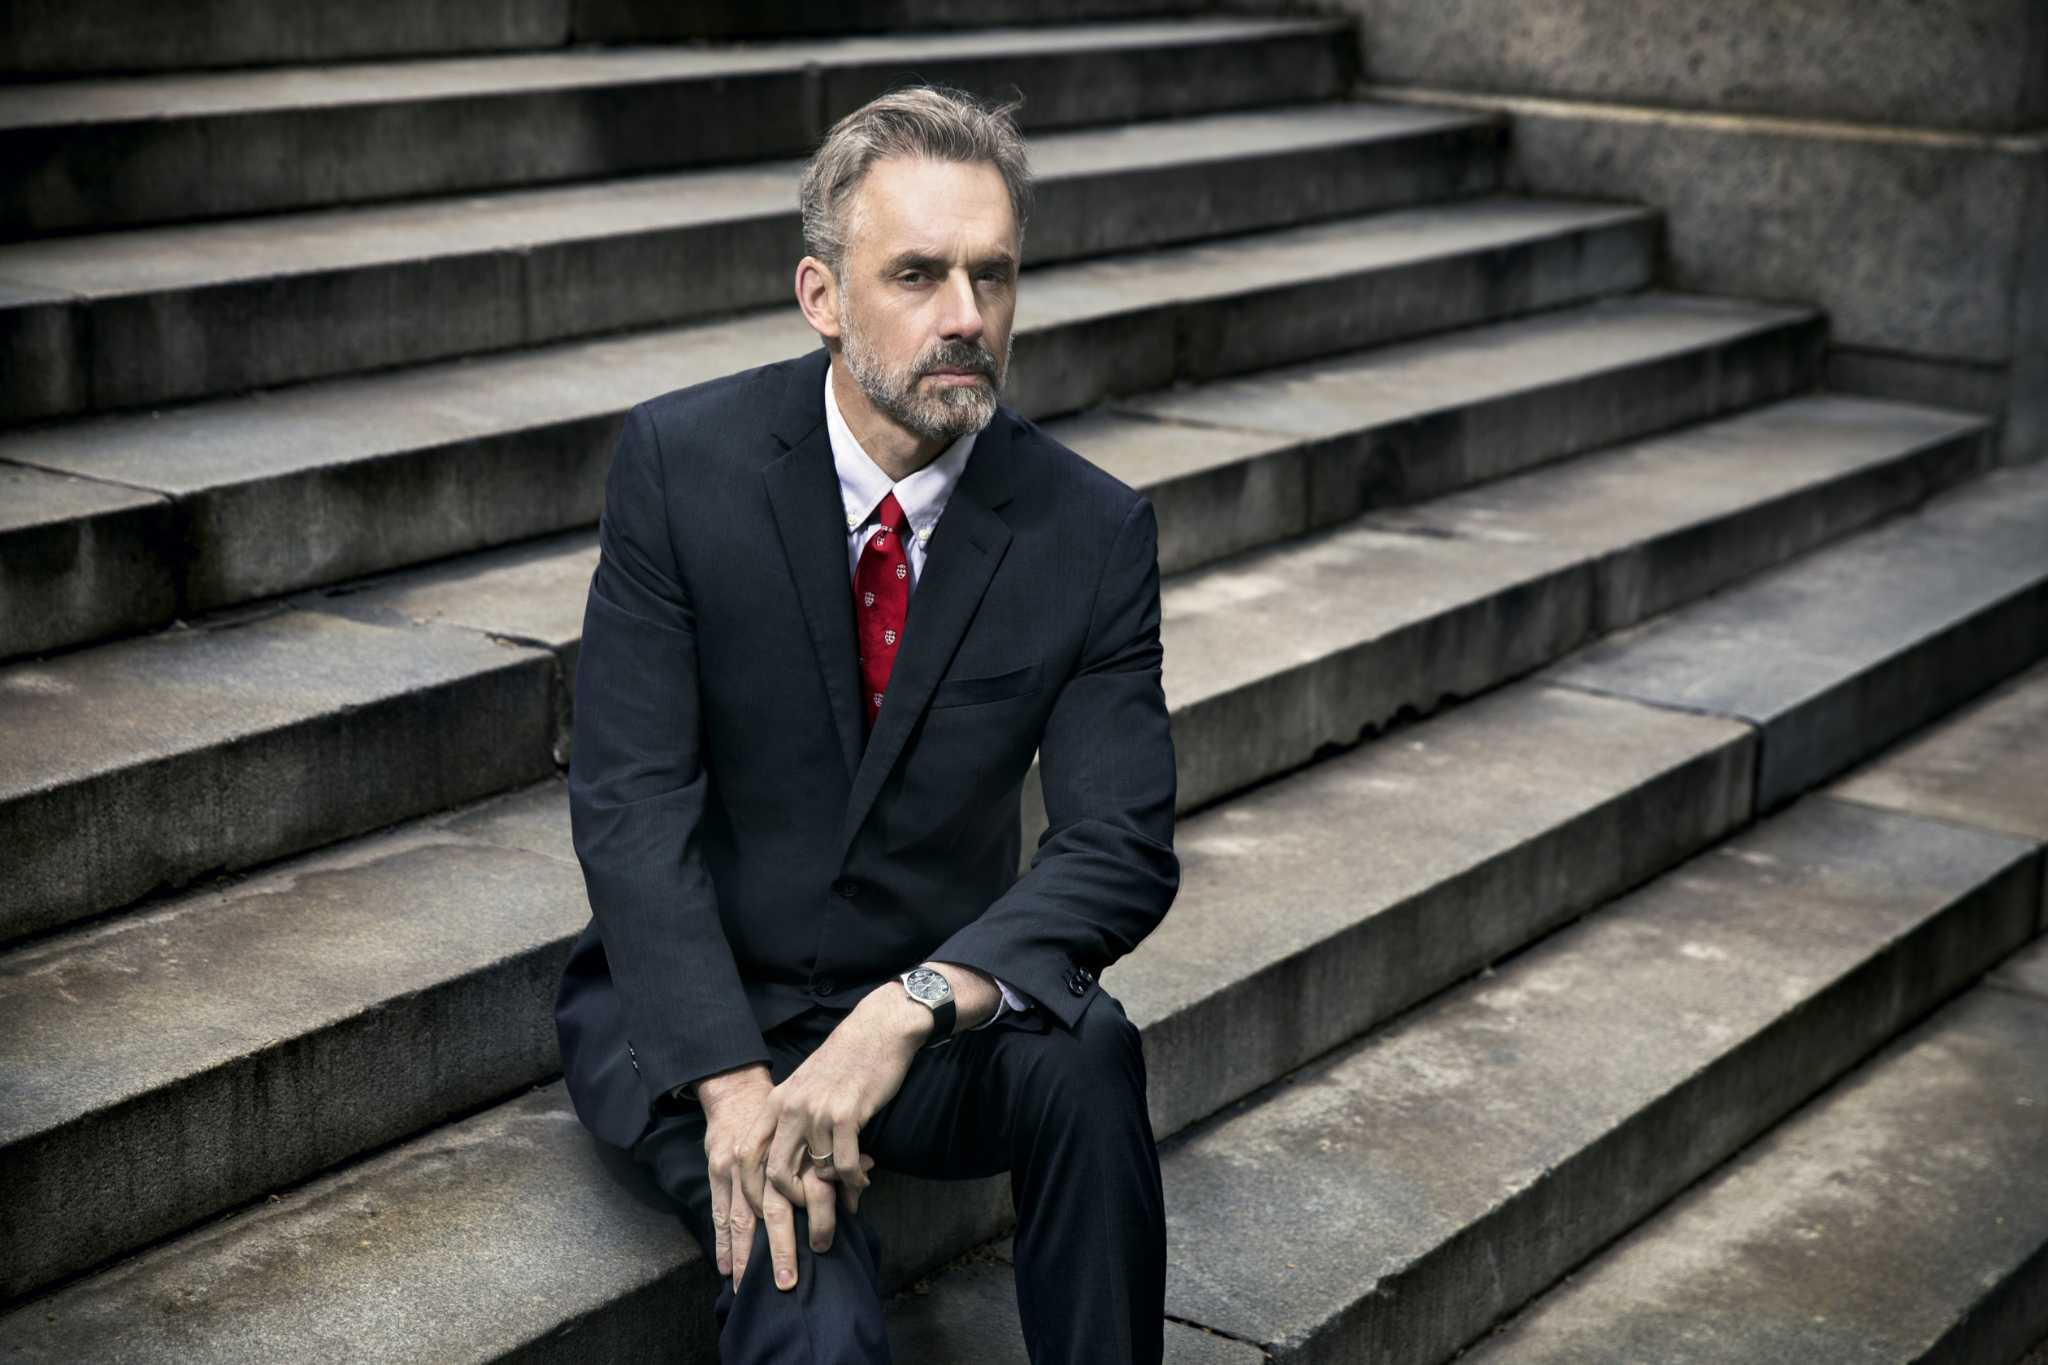 Jordan Peterson Is On A Crusade To Toughen Up Young Men